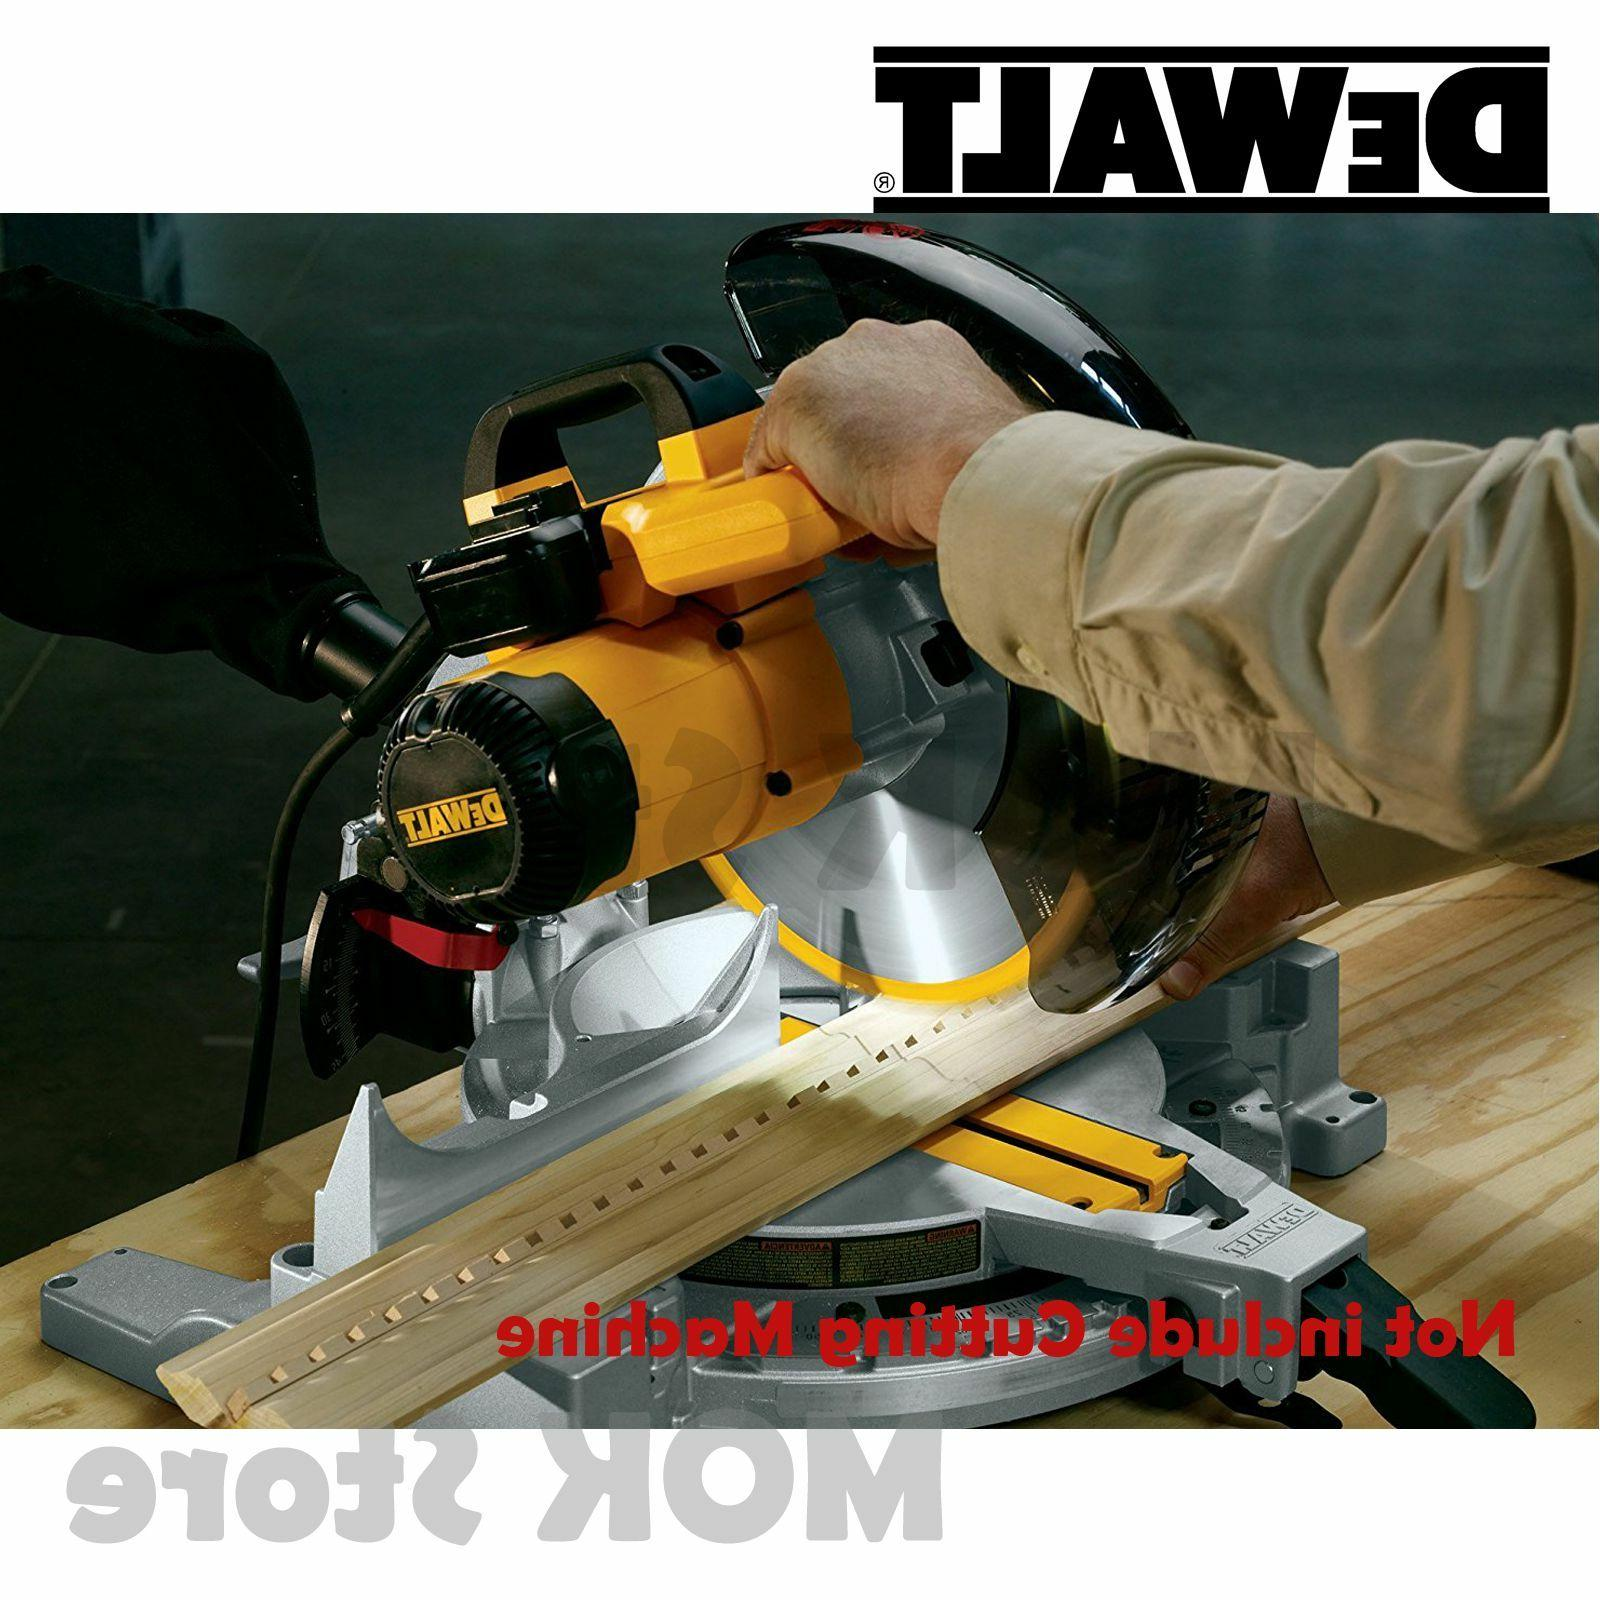 DeWalt Miter LED Worklight System DW717, Stock